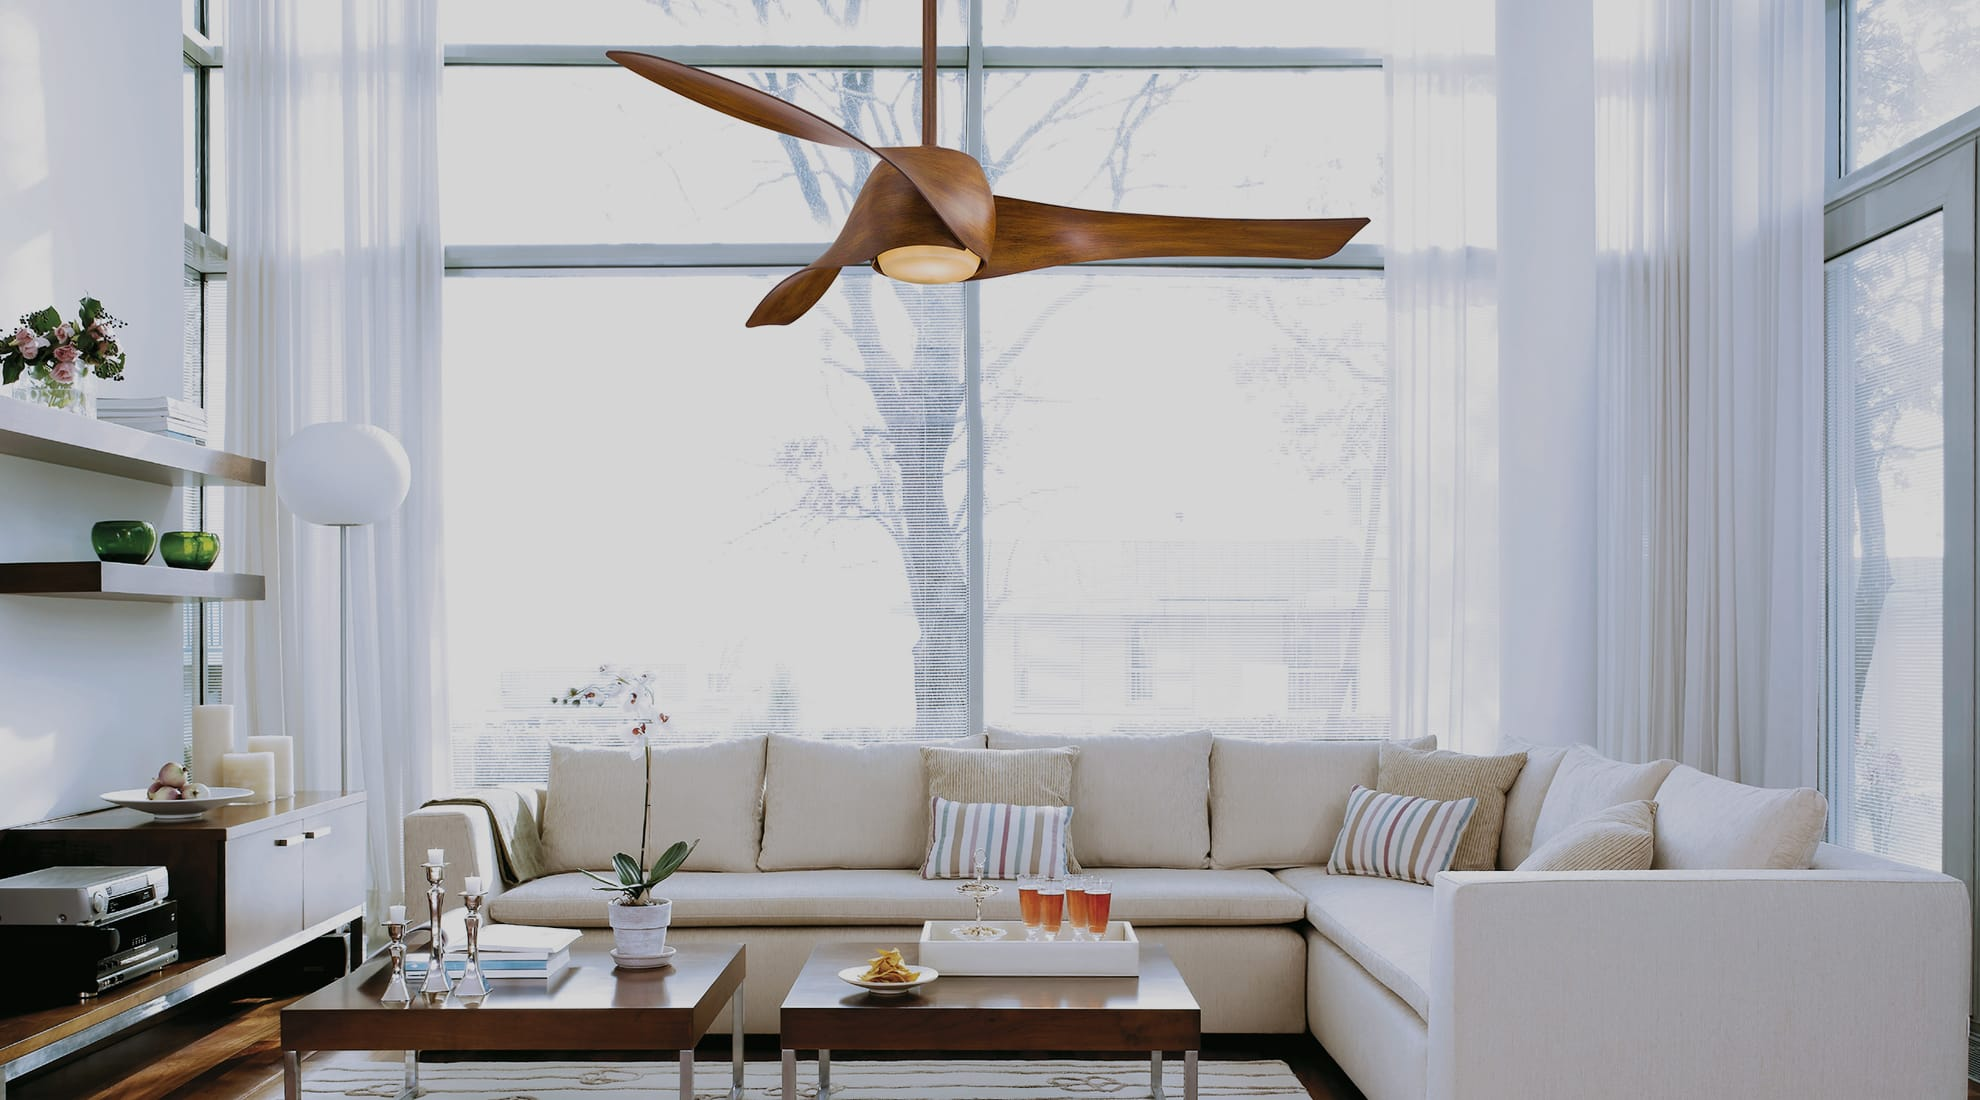 Small Industrial Ceiling Fan With Light